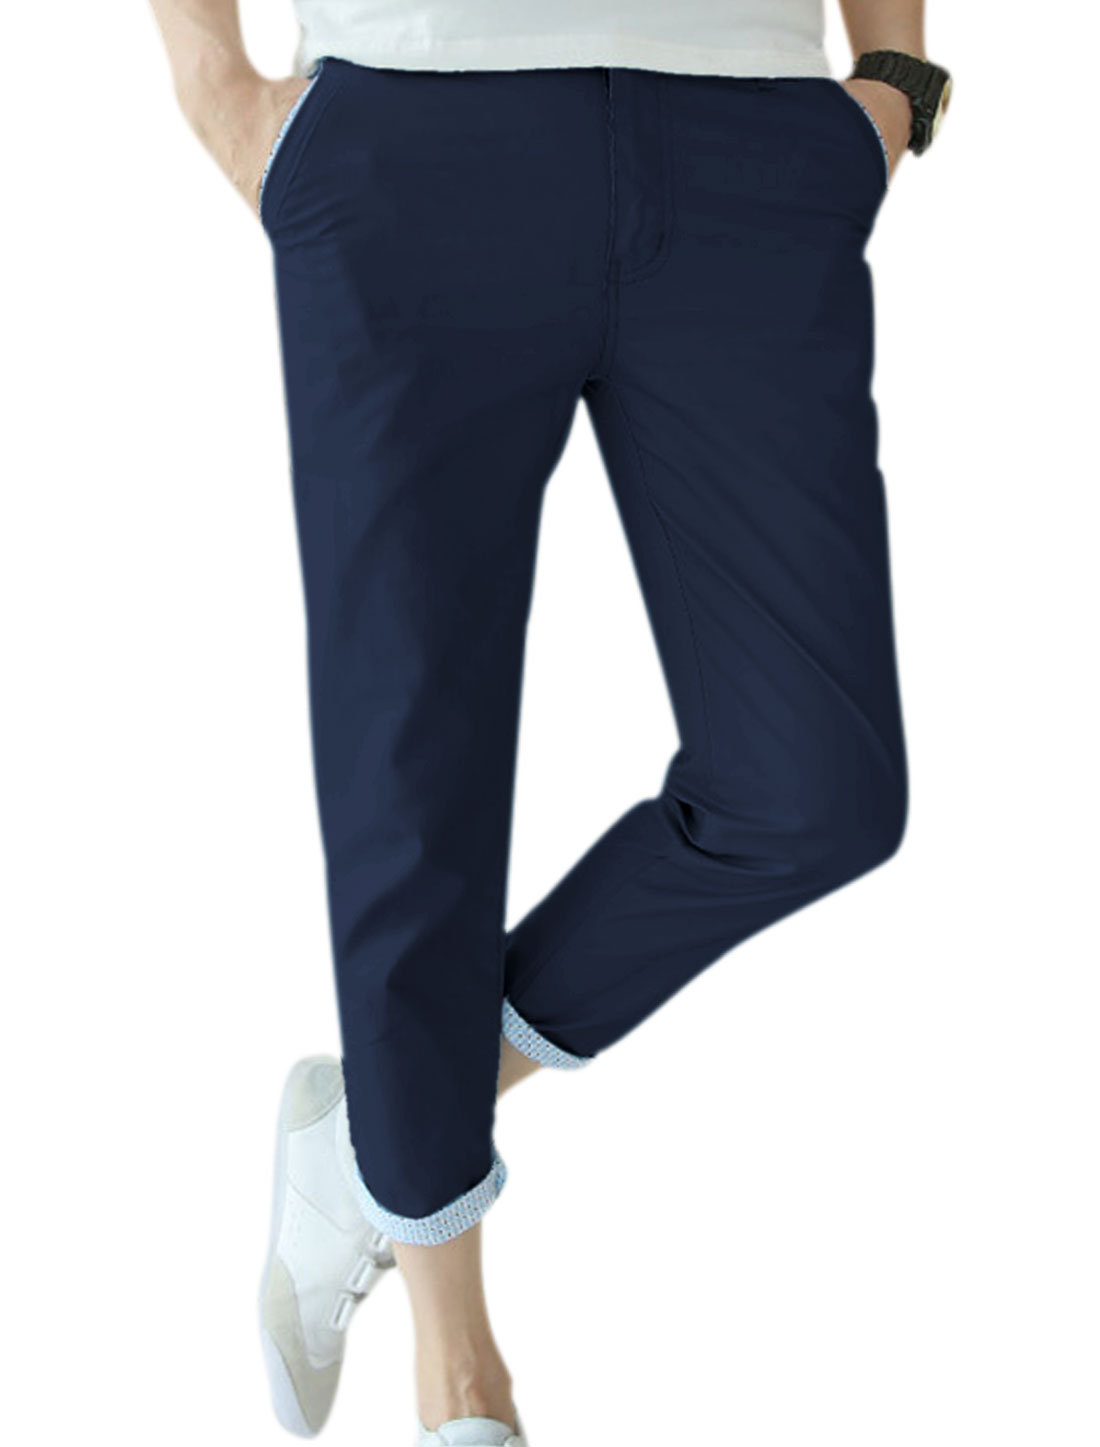 Men Belt Loop Slant Front Pockets Fitting Cropped Trousers Dark Blue W32